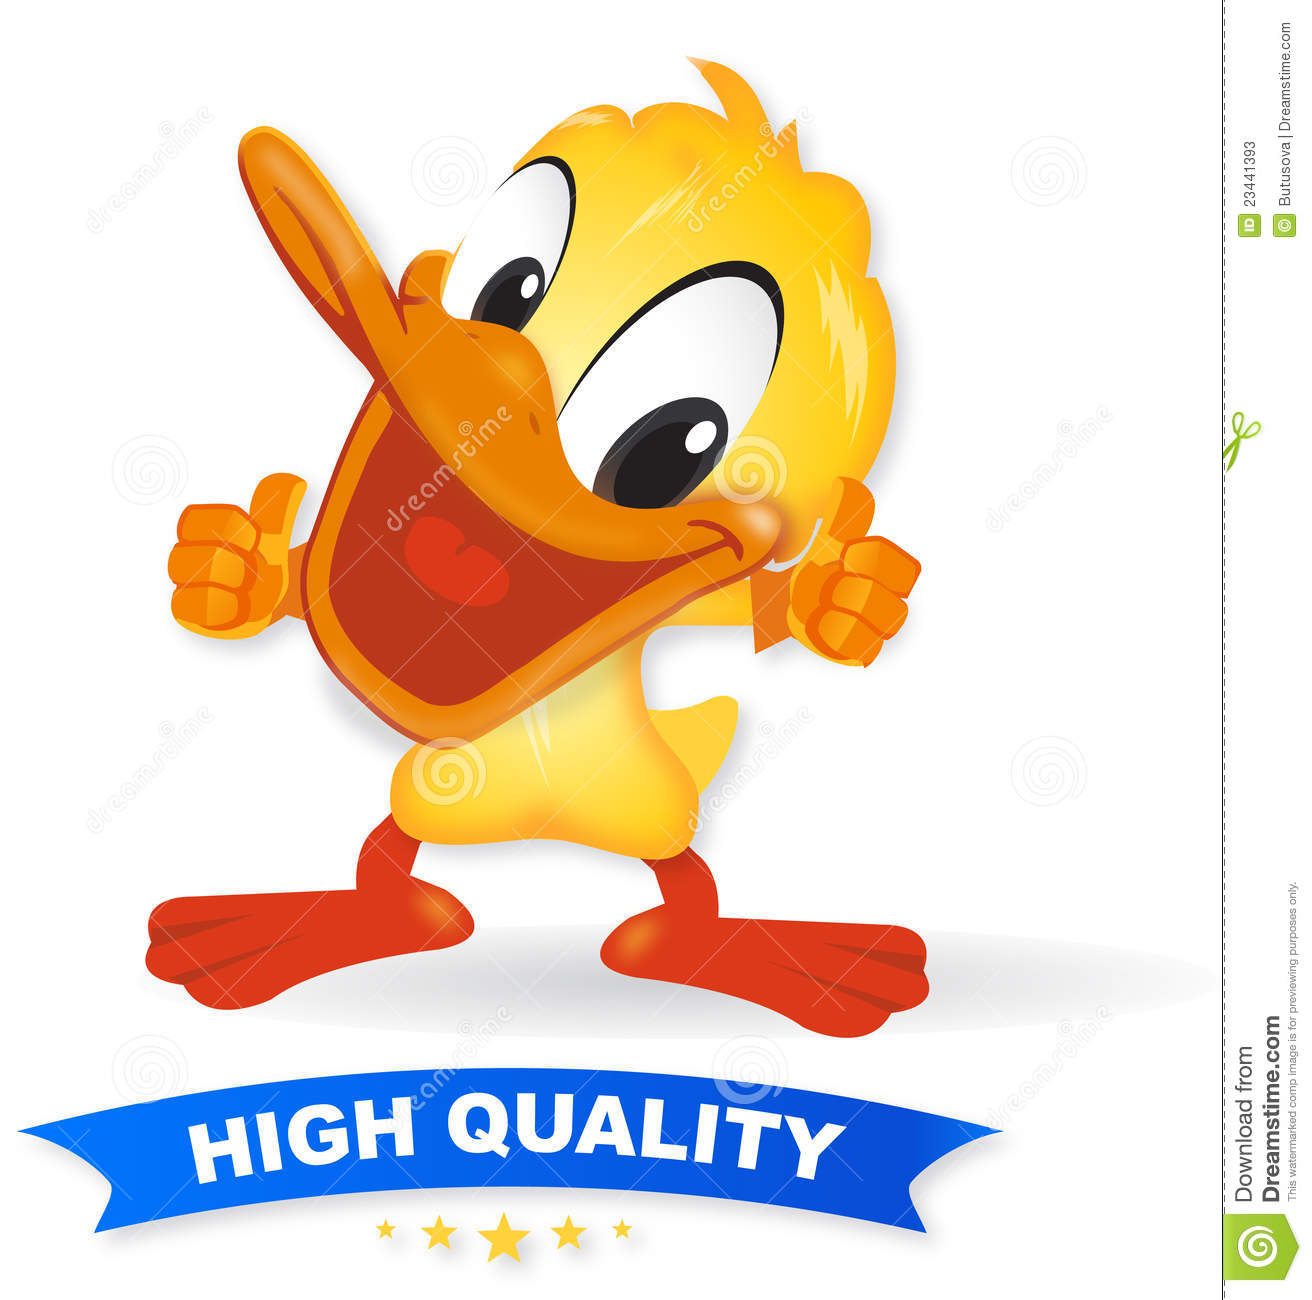 Canard illustration de qualit photos stock image - Illustration canard ...